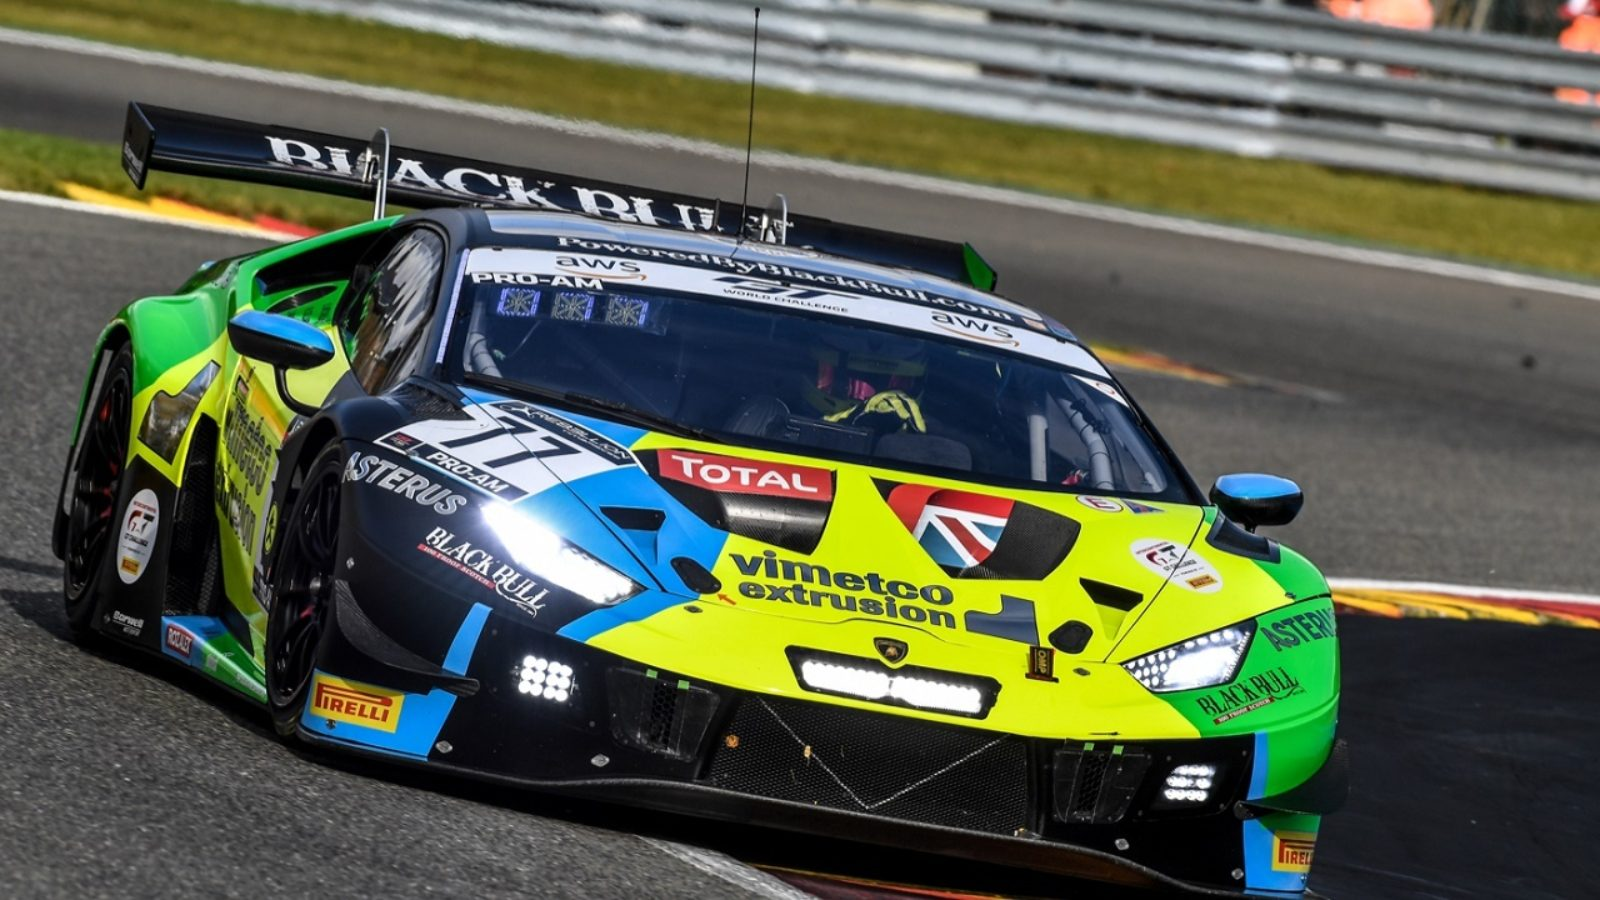 Scots endurance racer Sandy Mitchell claims back-to-back Spa 24-hours wins with Black Bull, Barwell and Lamborghini